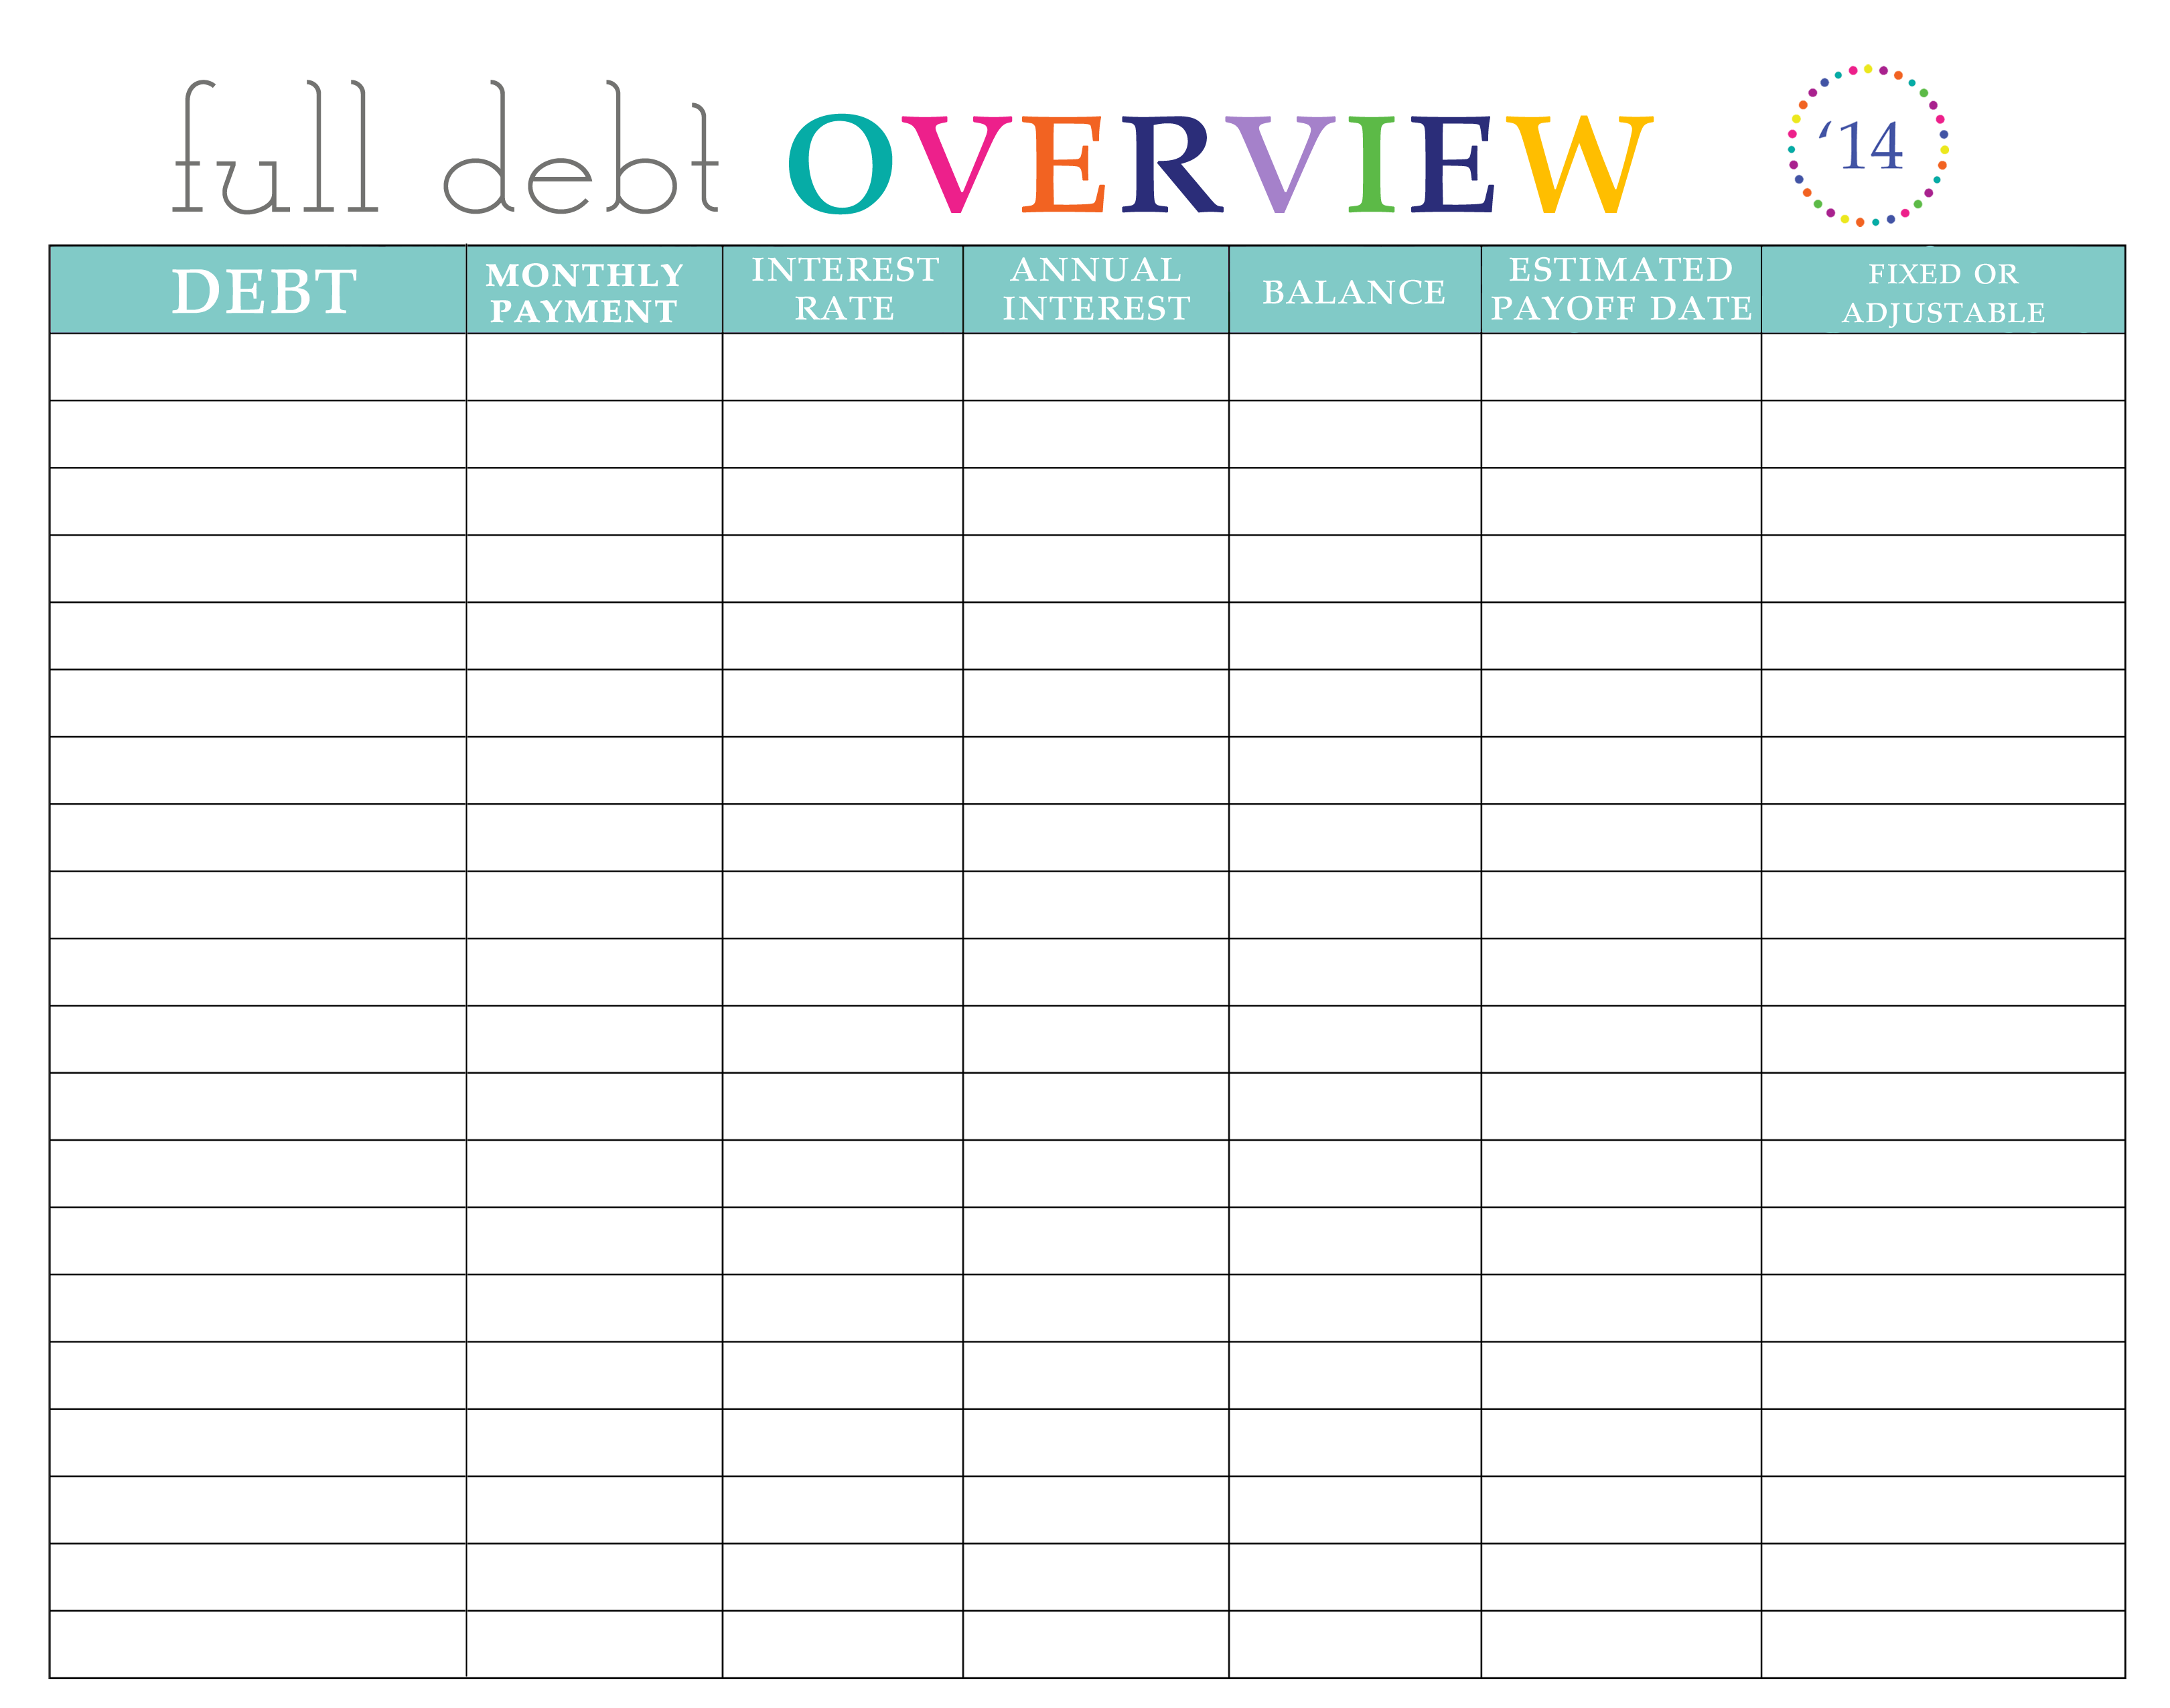 debt worksheet - Pertamini.co